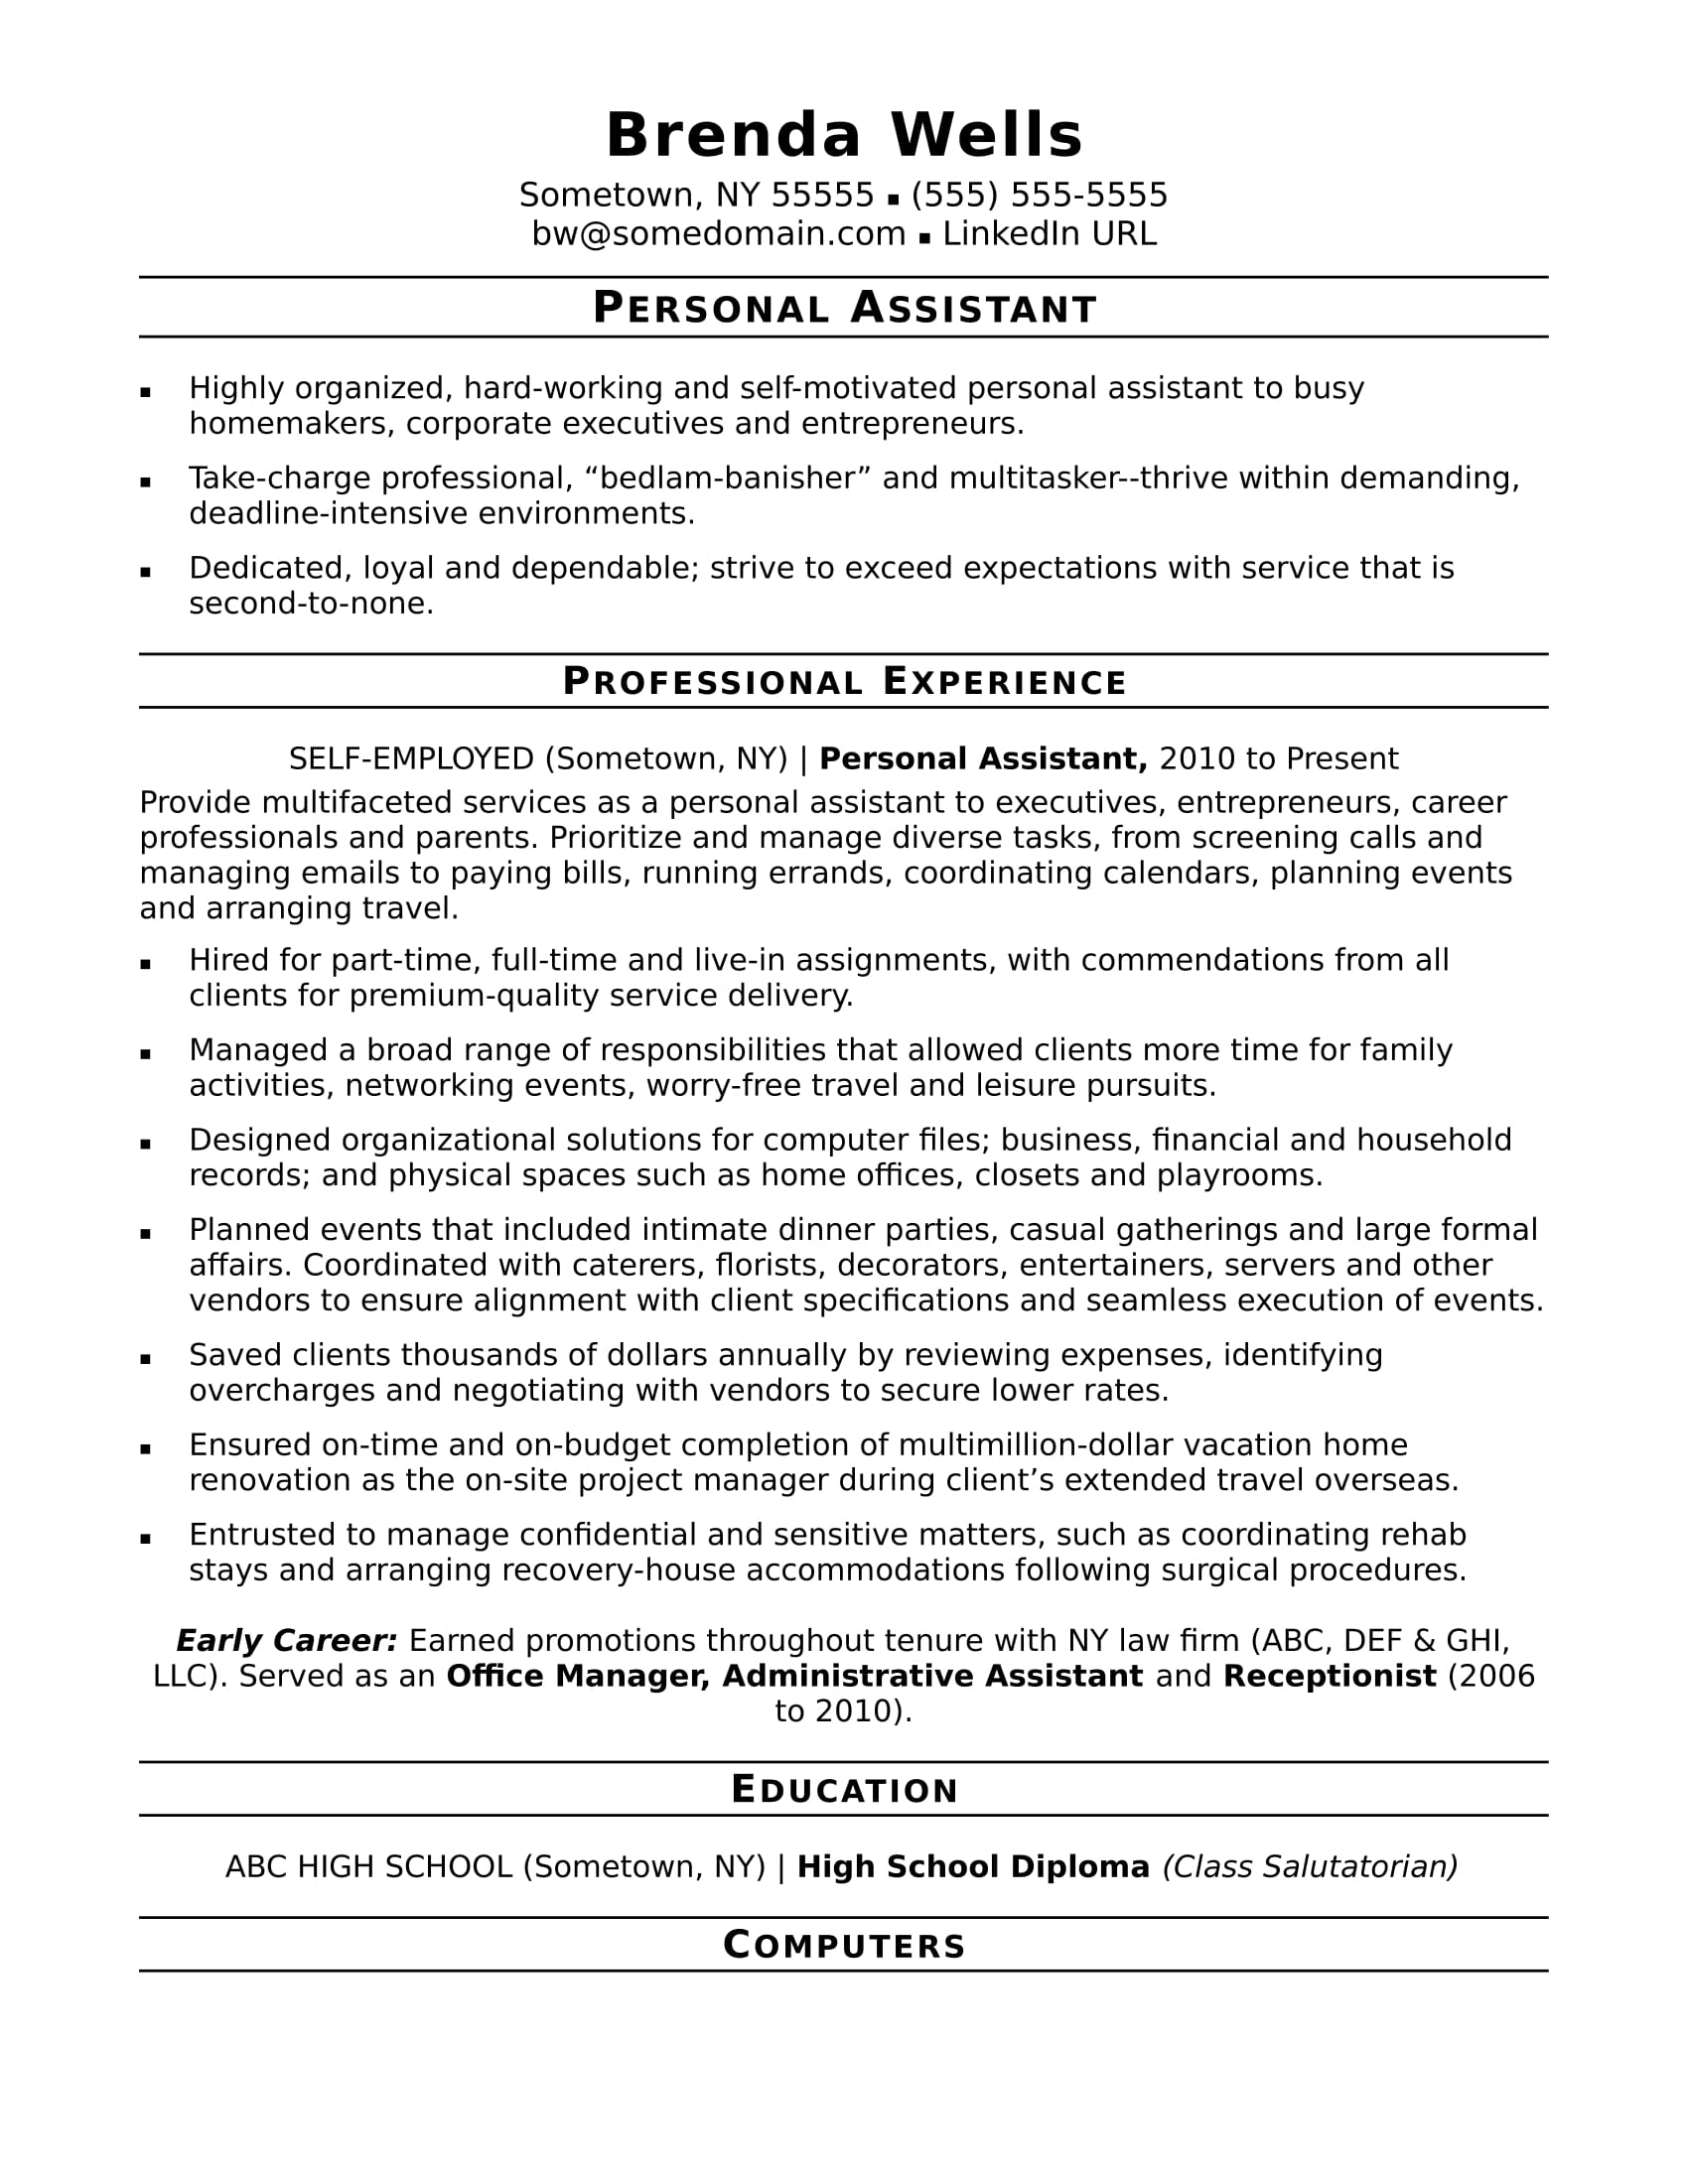 personal assistant resume sample monster responsibilities angular print double sided Resume Personal Assistant Responsibilities Resume